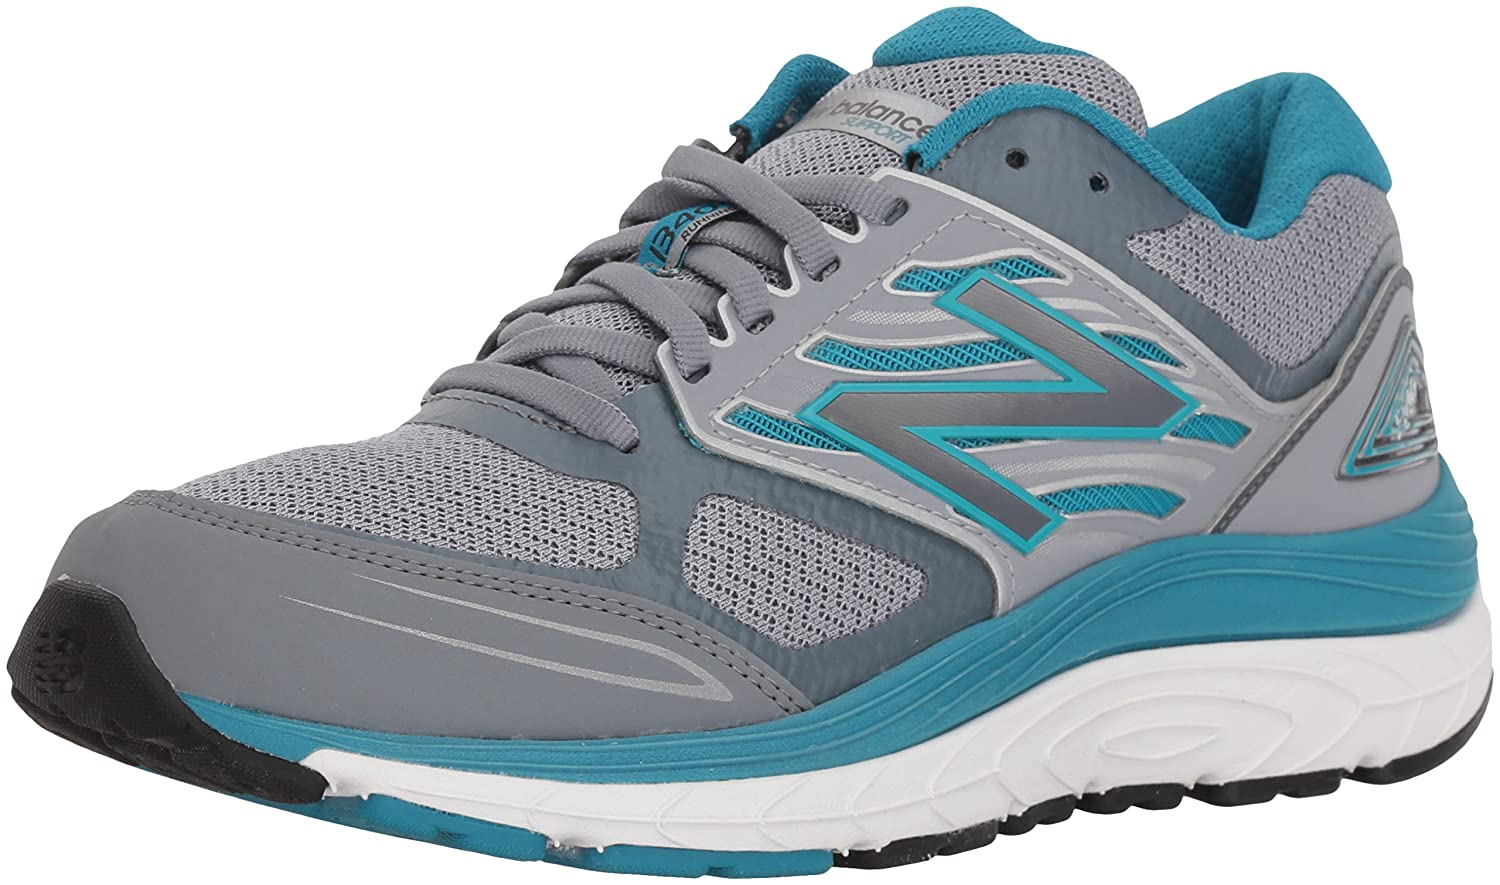 New Balance Women's 1340v3 Running Shoe B01NA8VWCG 11 B(M) US|Dark Grey